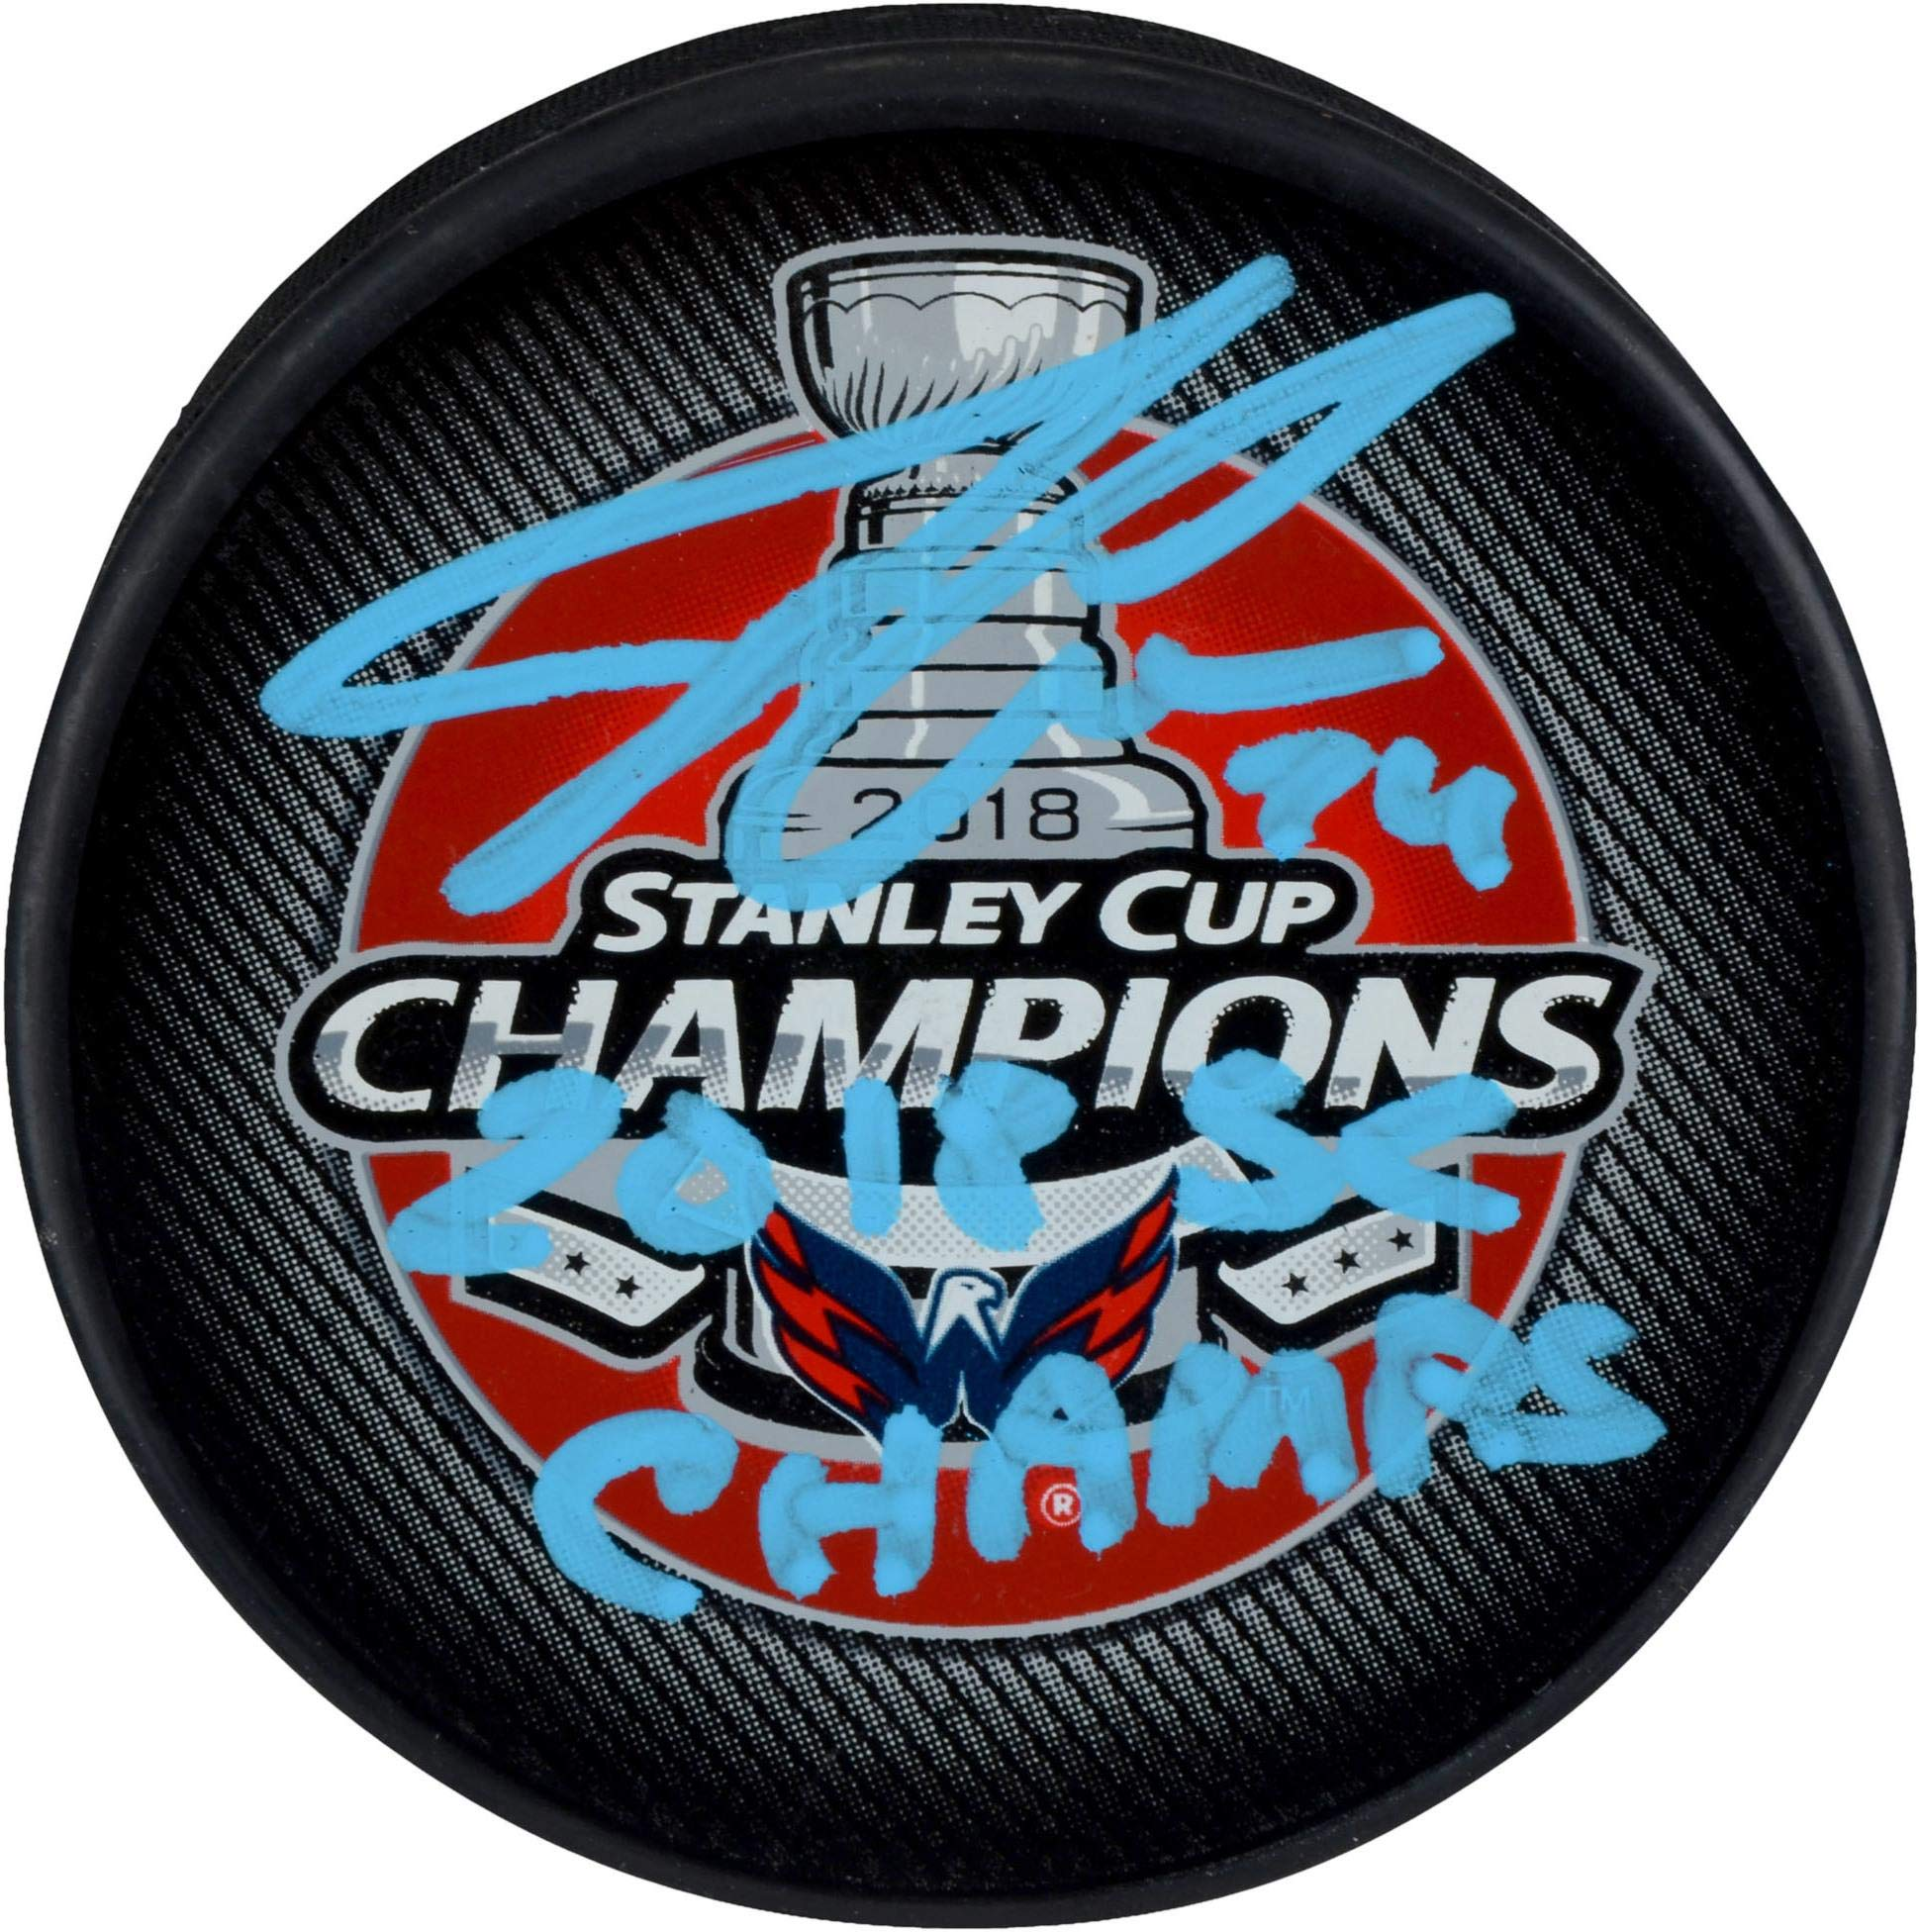 John Carlson Washington Capitals 2018 Stanley Cup Champions Autographed Stanley Cup Champions Logo Hockey Puck with 2018 SC Champs Inscription Fanatics Authentic Certified